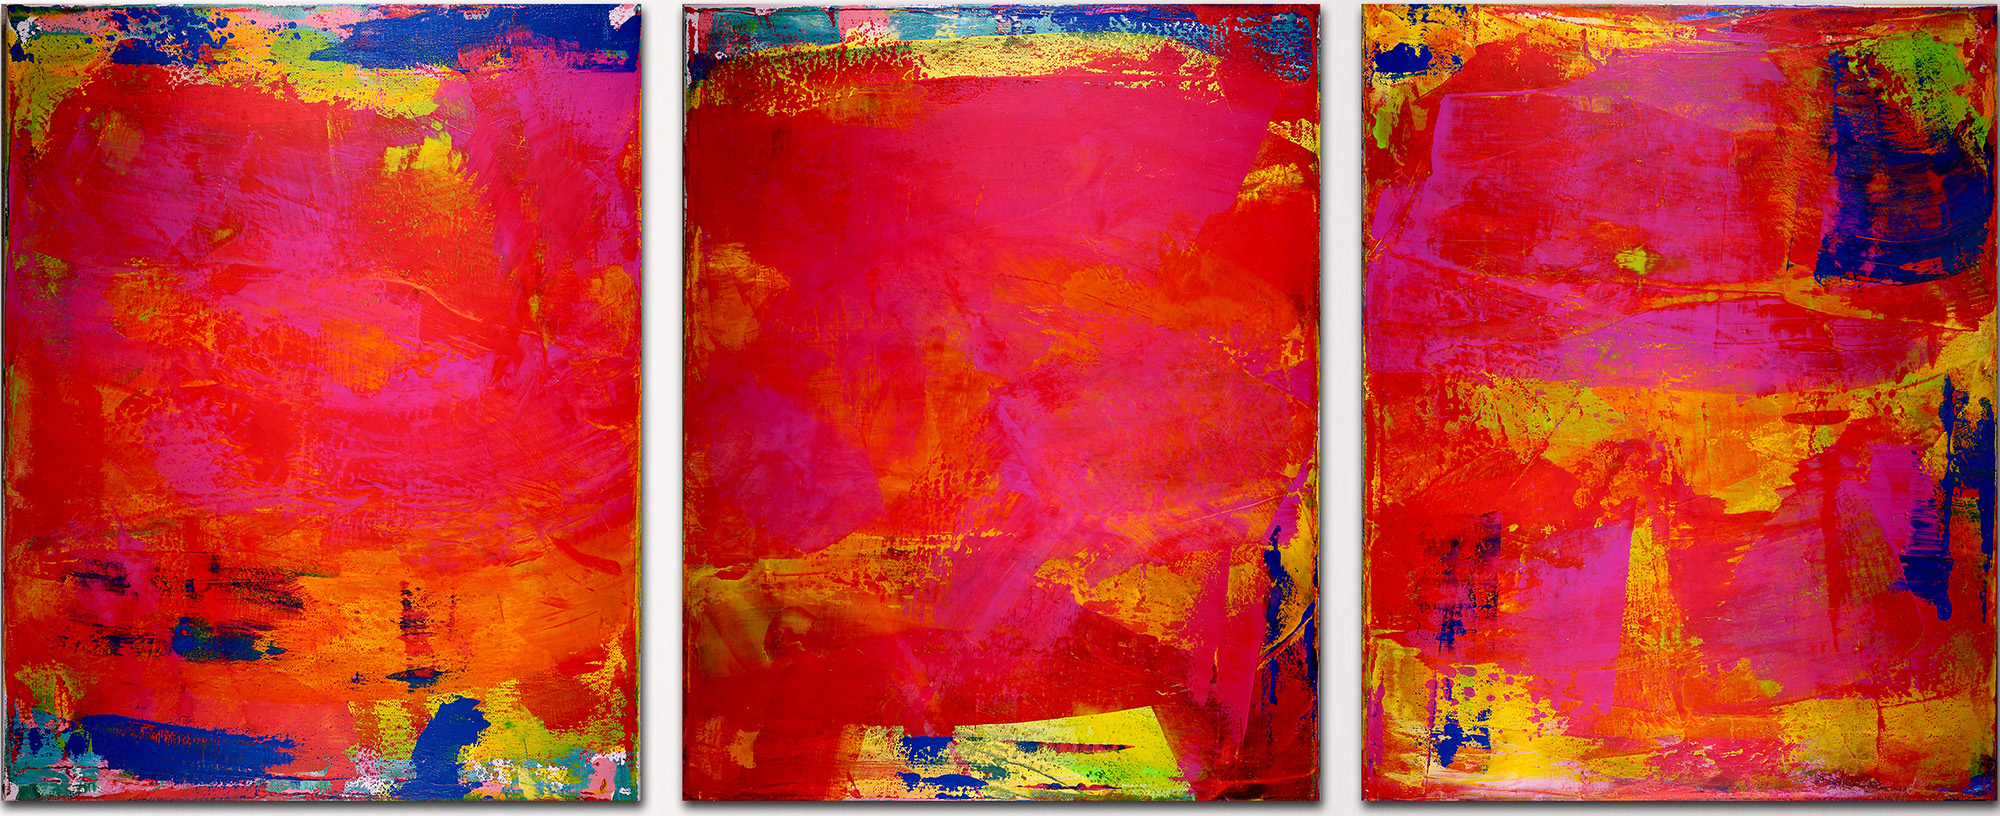 """SOLD ARTWORK """"A place to hide II""""- Abstract Tryptic (2016) SOLD by Los Angeles artist Nestor Toro"""